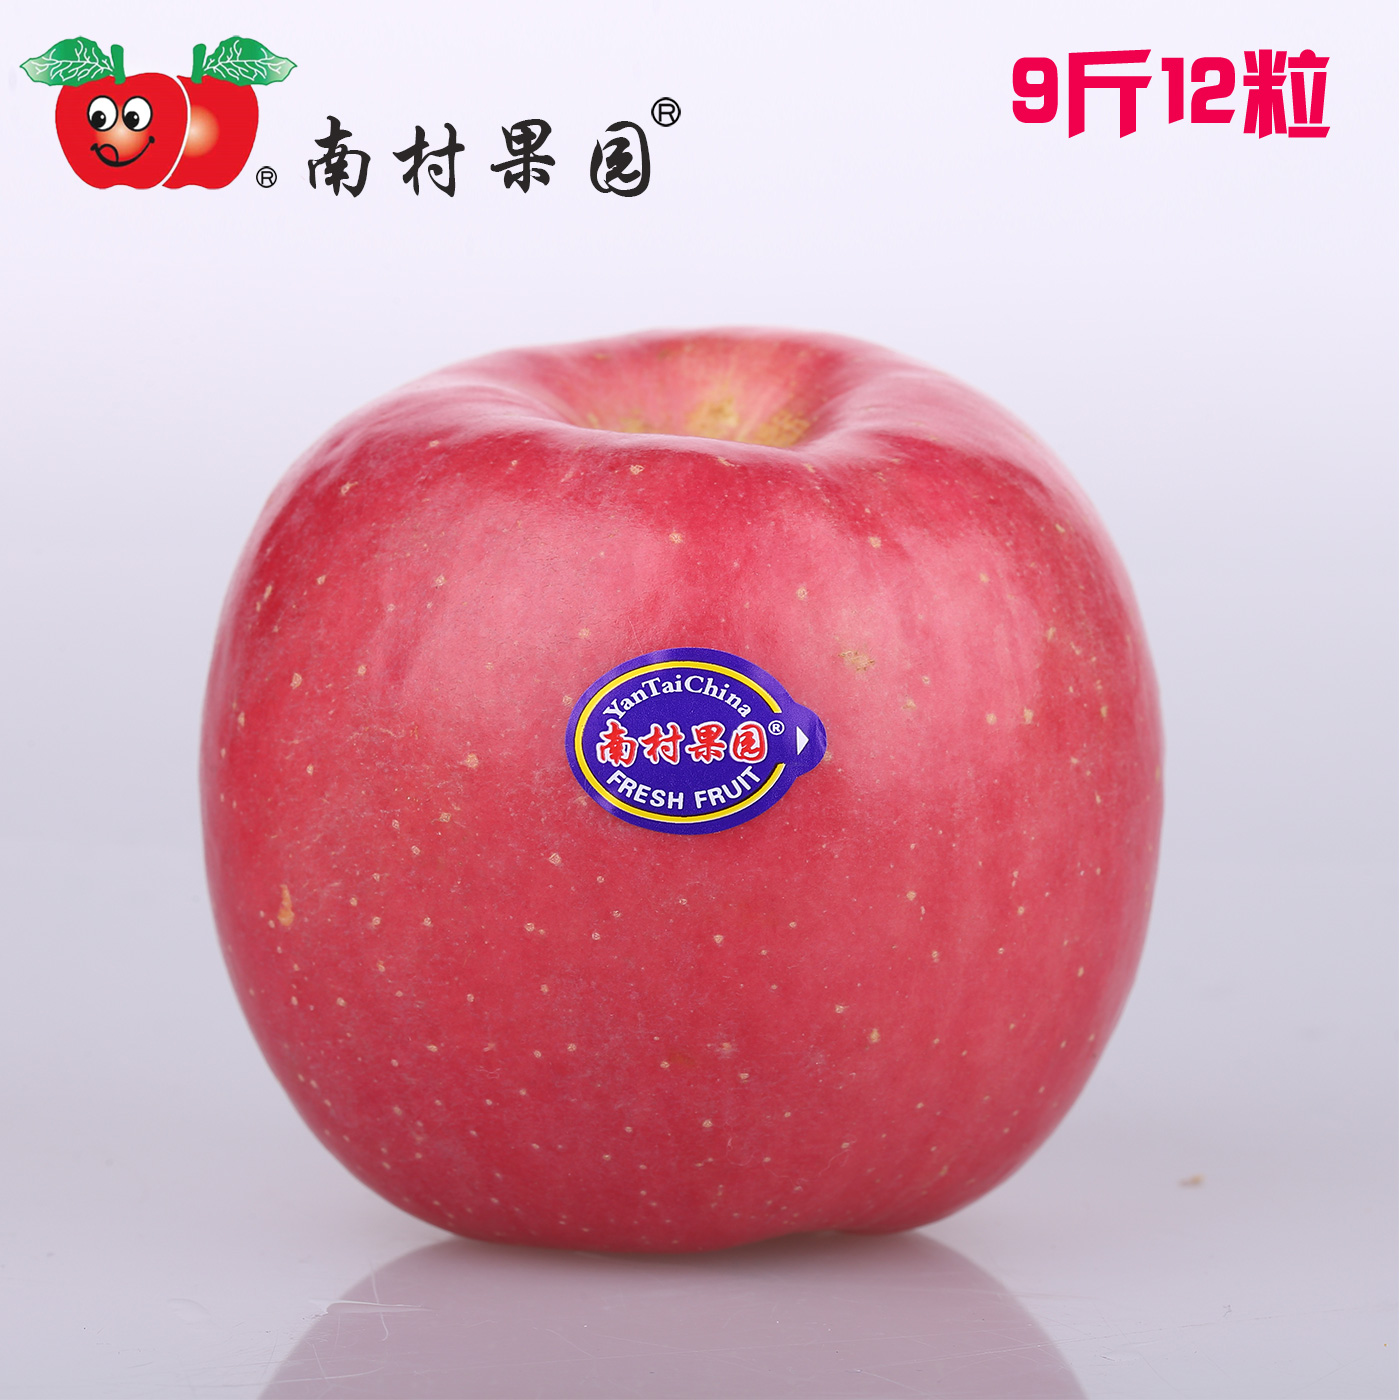 DDD Apple 95 big fruit 9 Jin Yantai special apple fruit